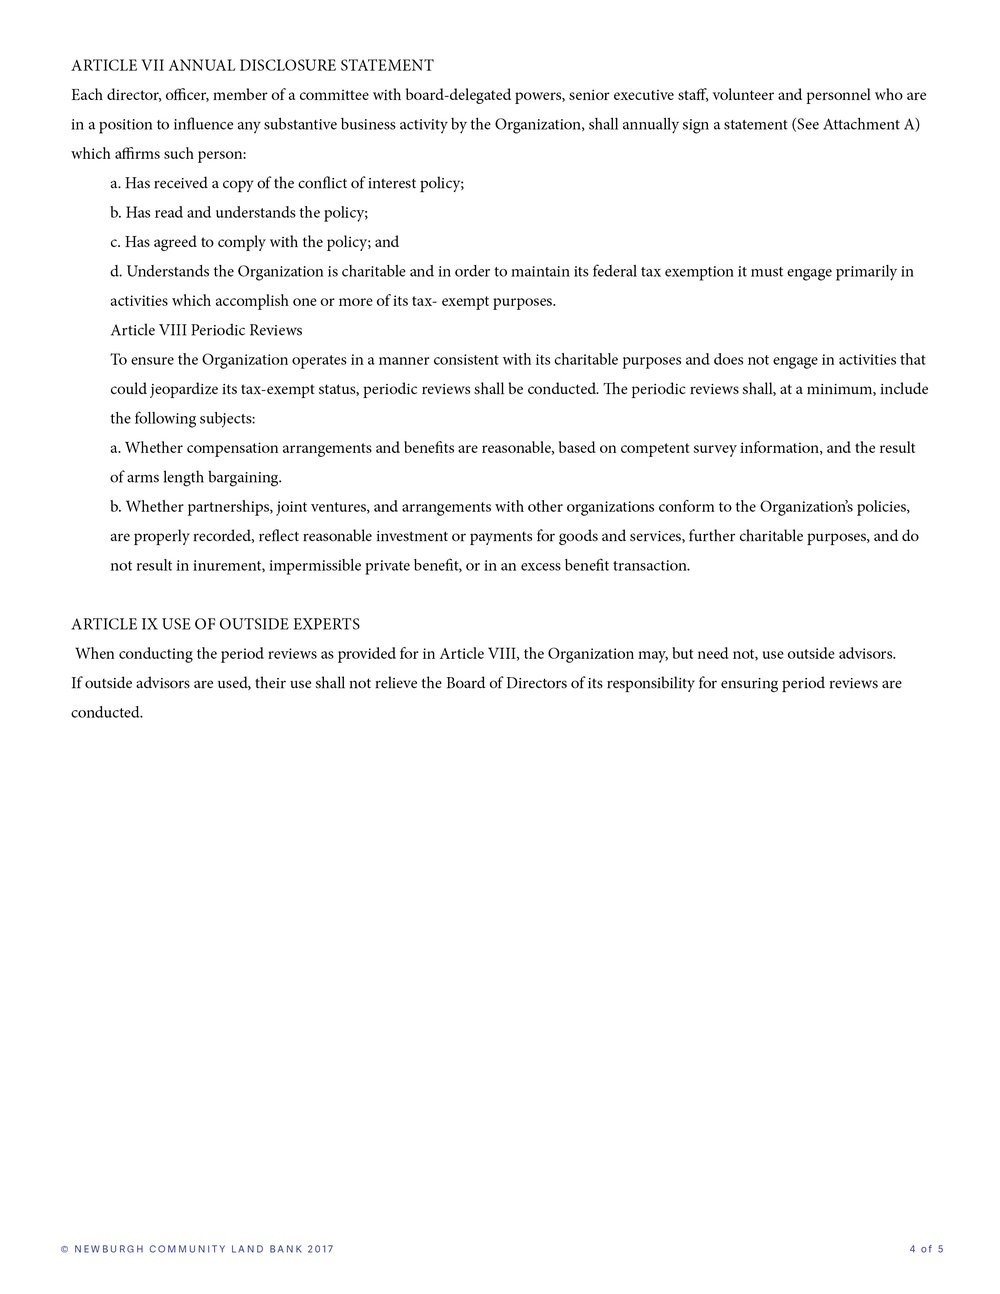 Conflict of interest policy template conflict of interest letter of interest policy expense template pronofoot35fo Images